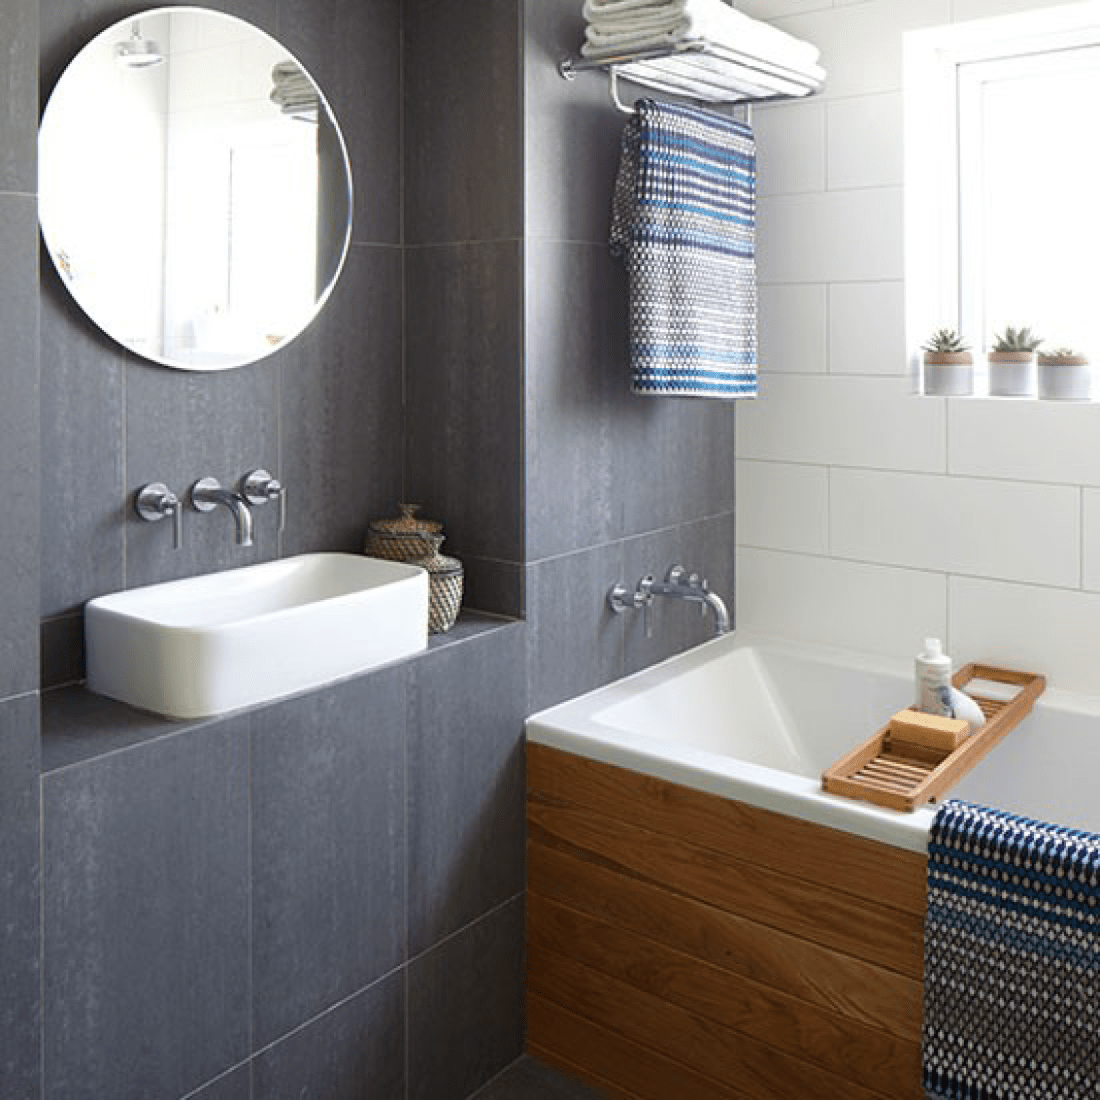 Pros and Cons of using slate tiles in a bathroom.